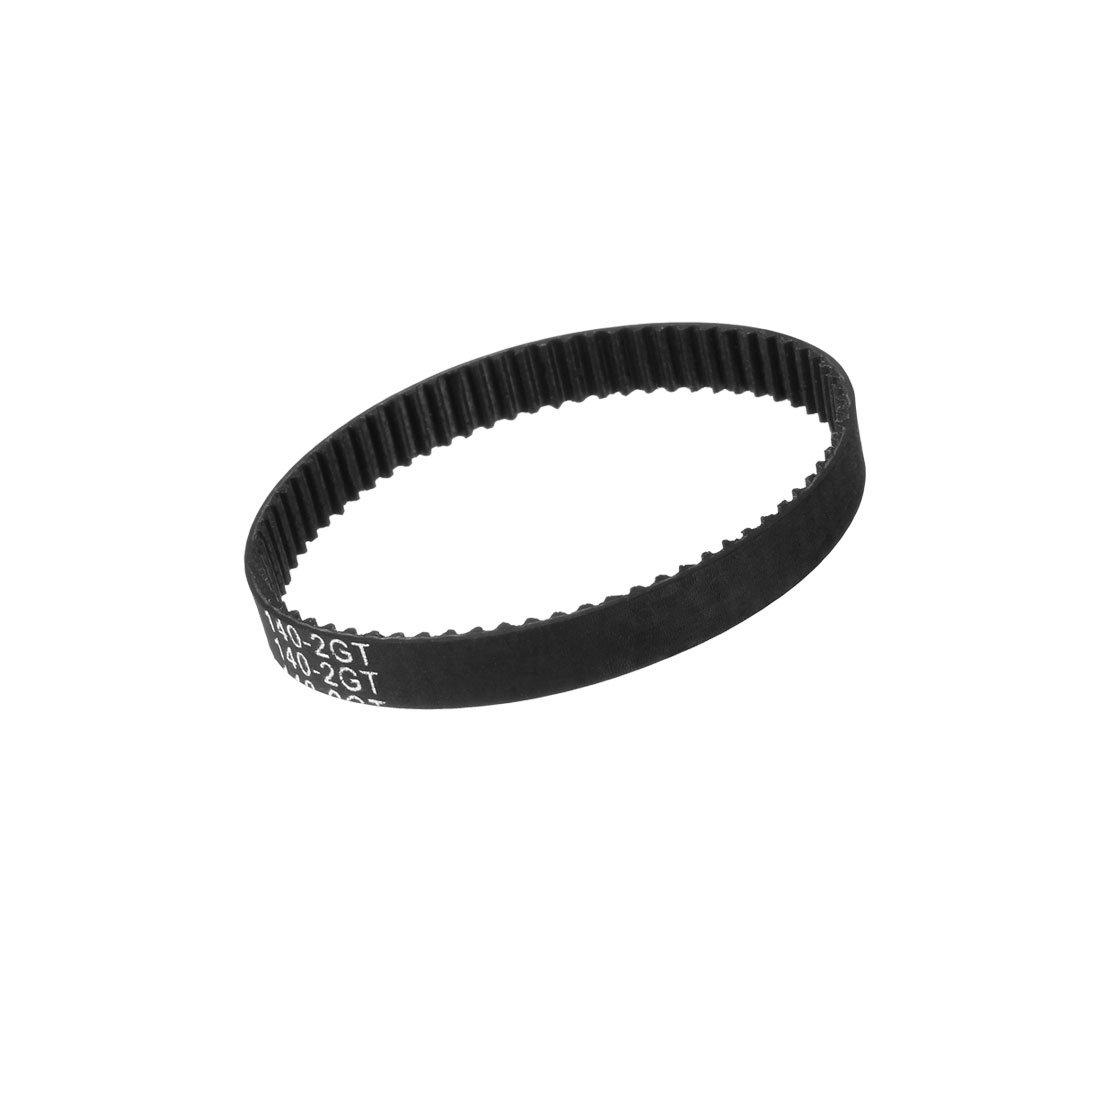 GT2 Timing Belt 140mm Closed Fit Synchronous Wheel for 3D Printer